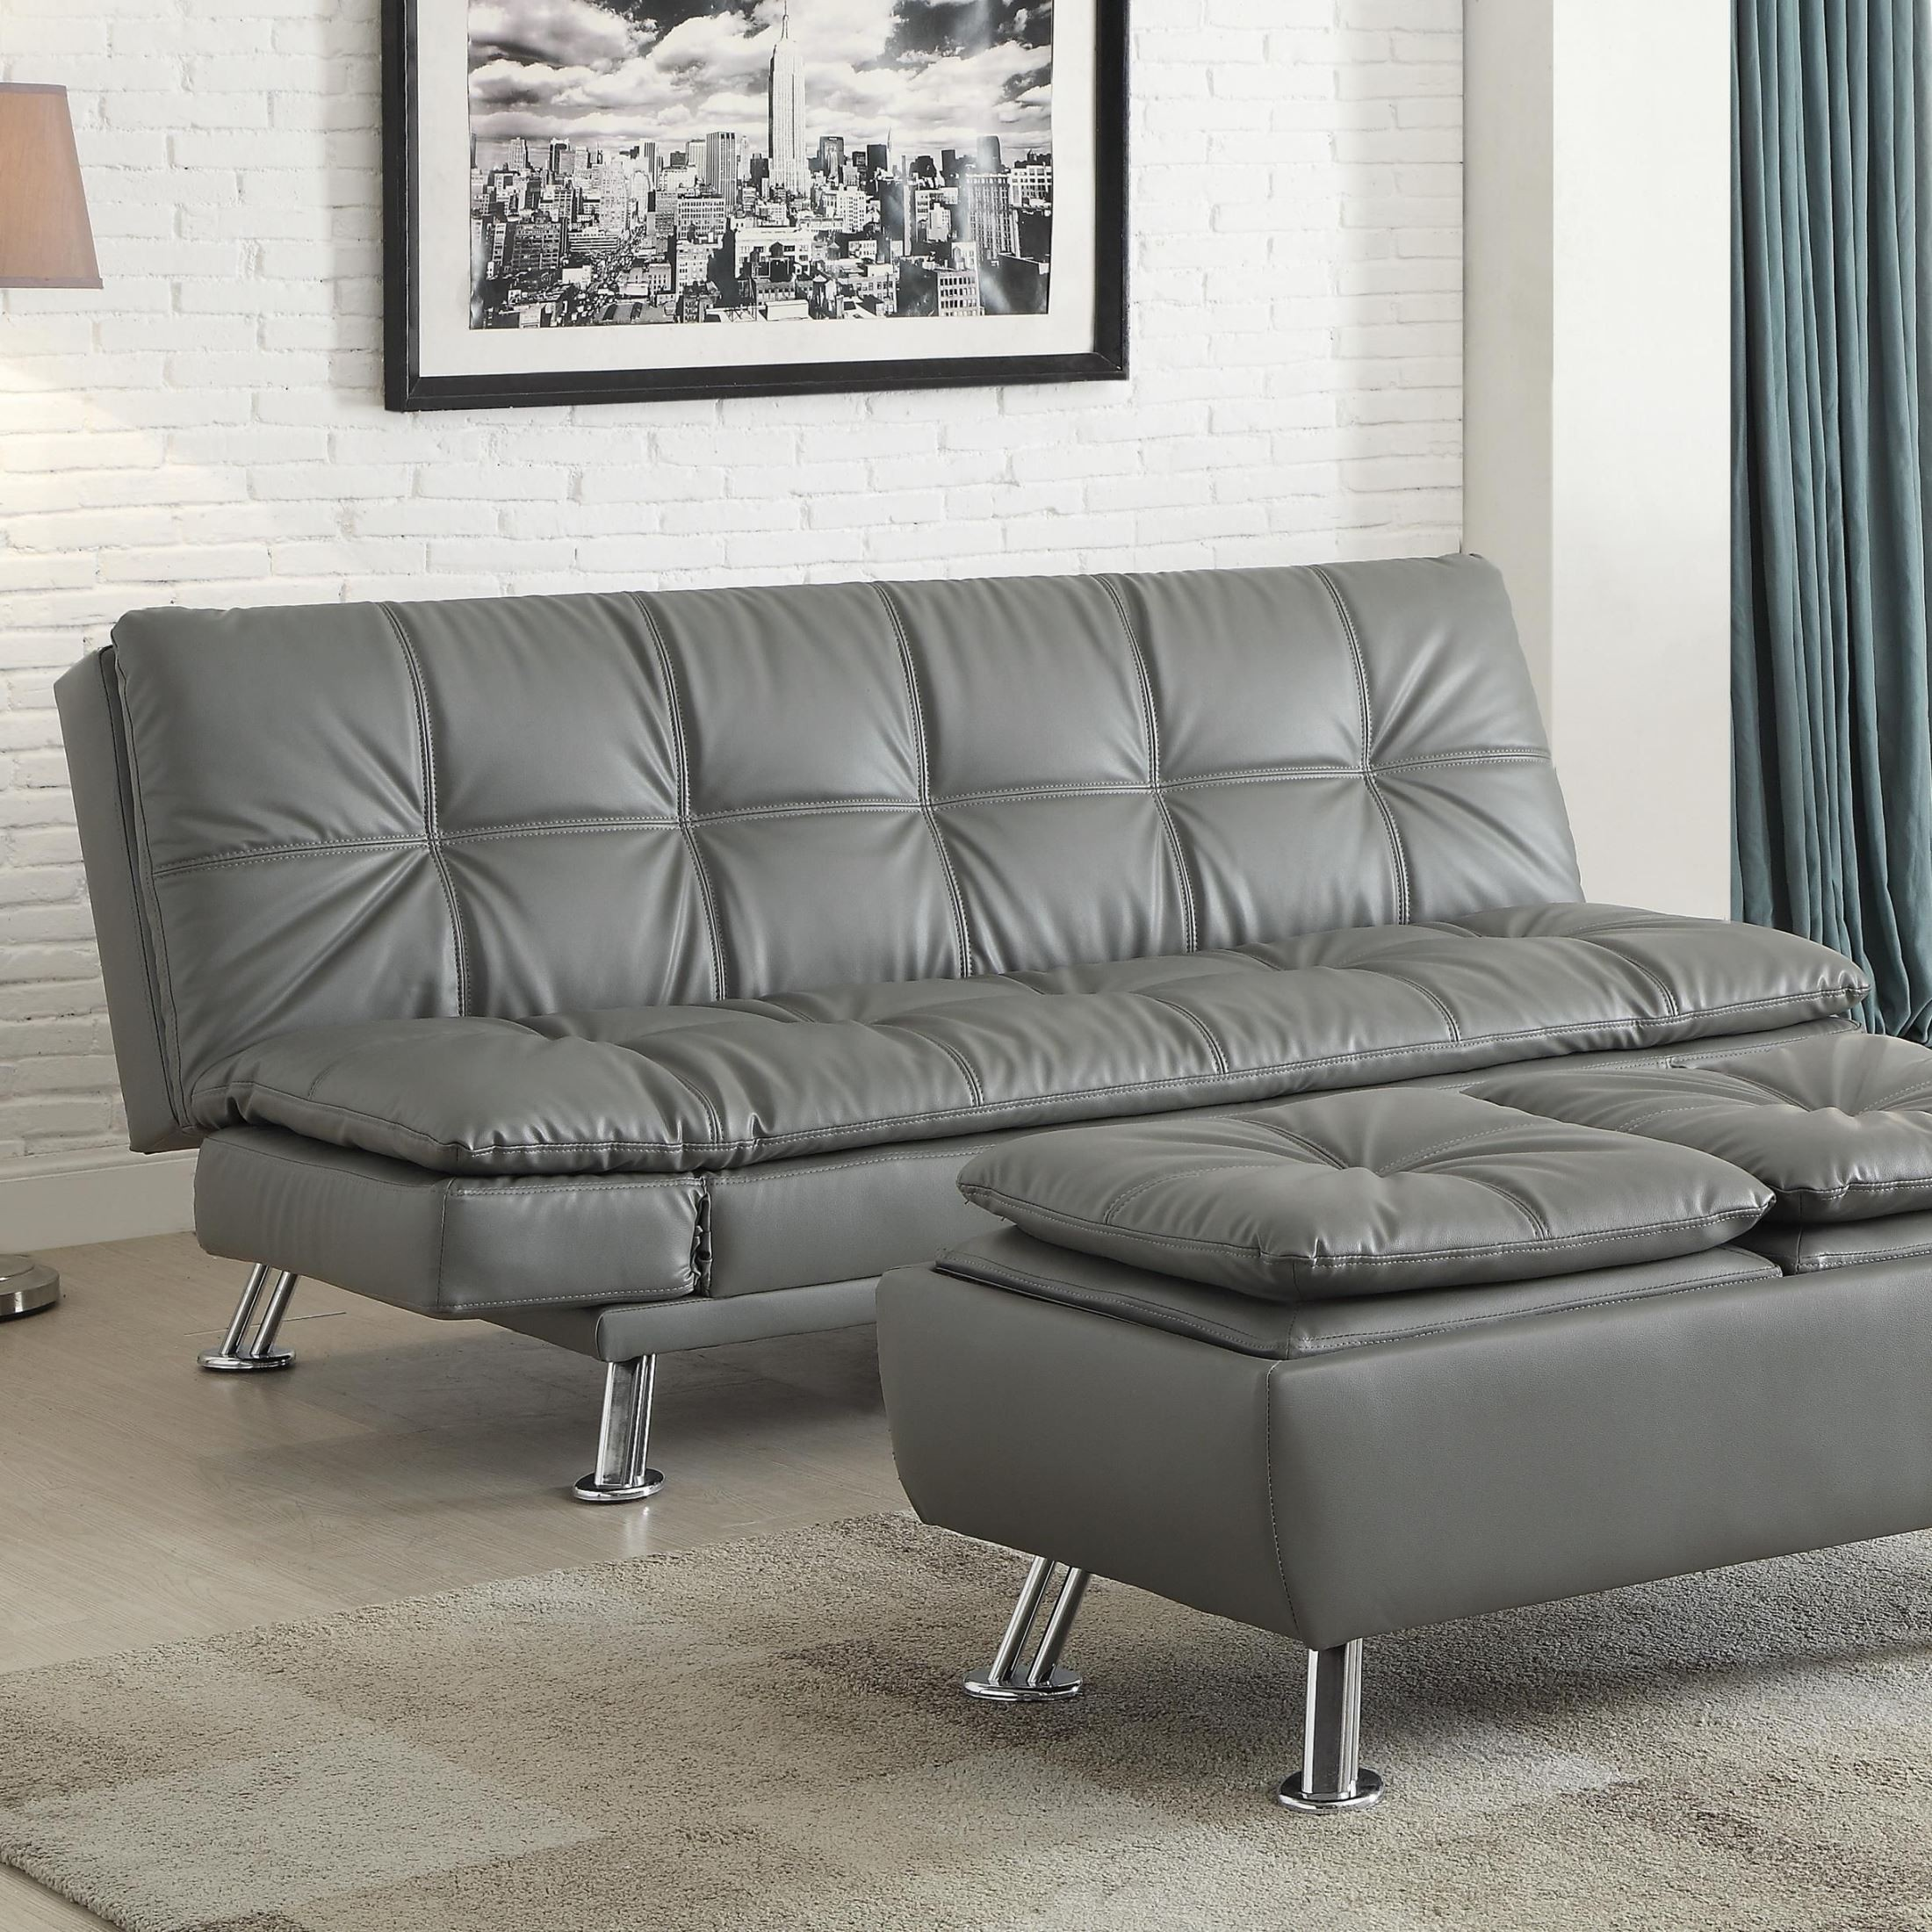 futon living room sets dilleston futon style living room set from coaster 500096 13257